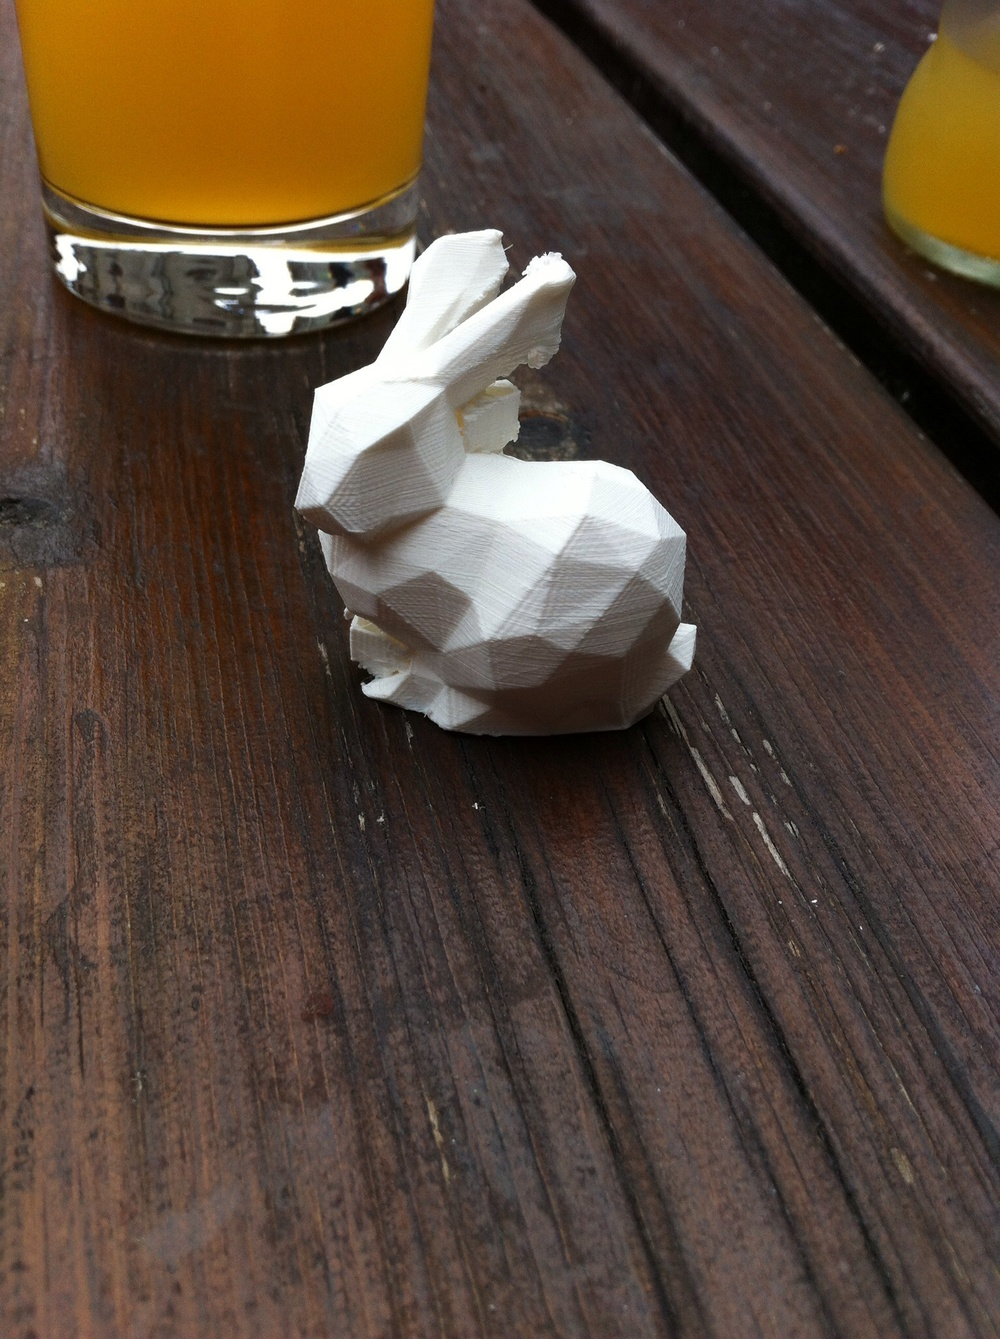 Polygon bunny!